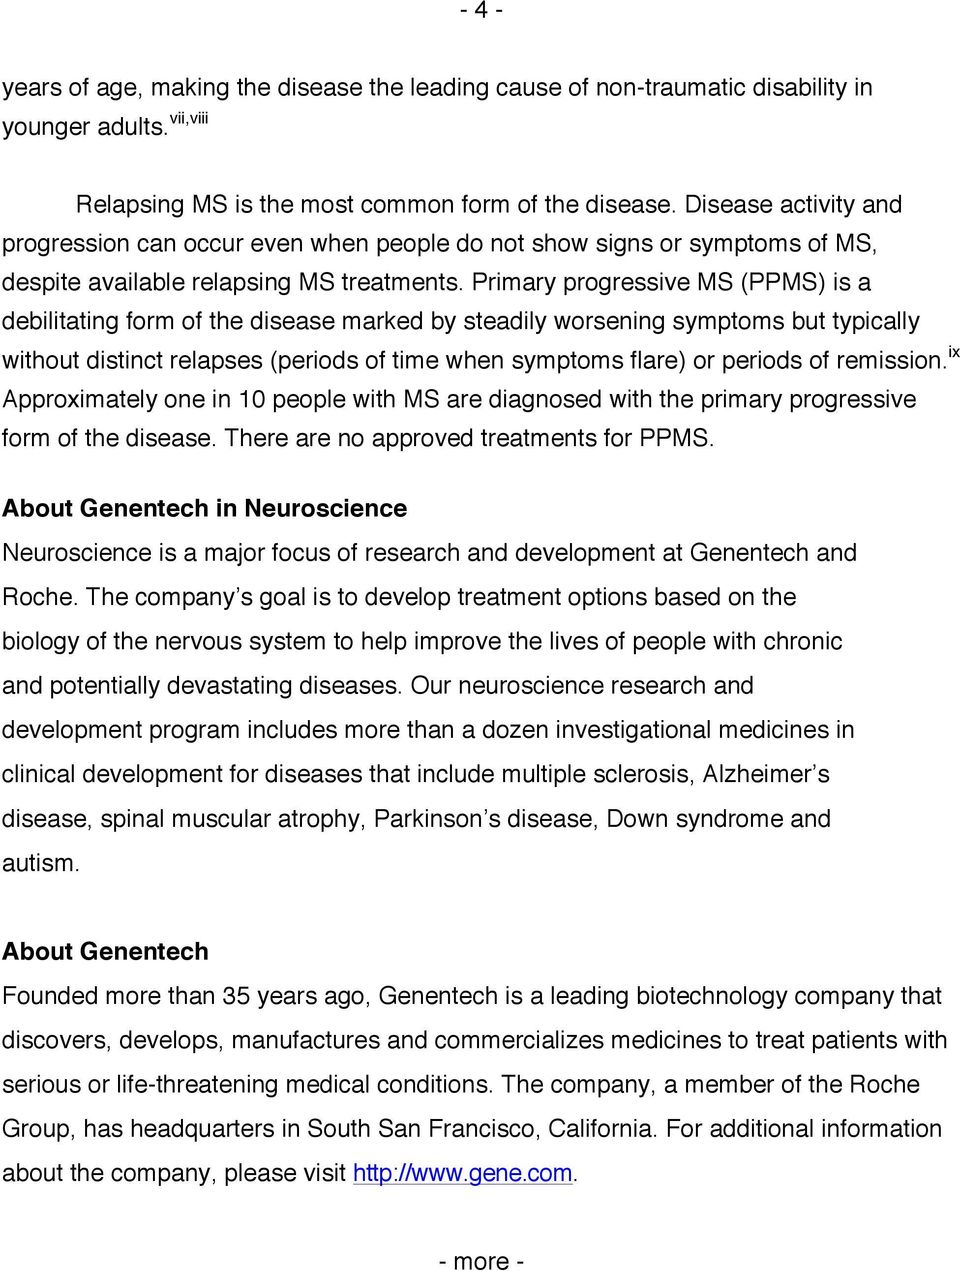 Primary progressive MS (PPMS) is a debilitating form of the disease marked by steadily worsening symptoms but typically without distinct relapses (periods of time when symptoms flare) or periods of